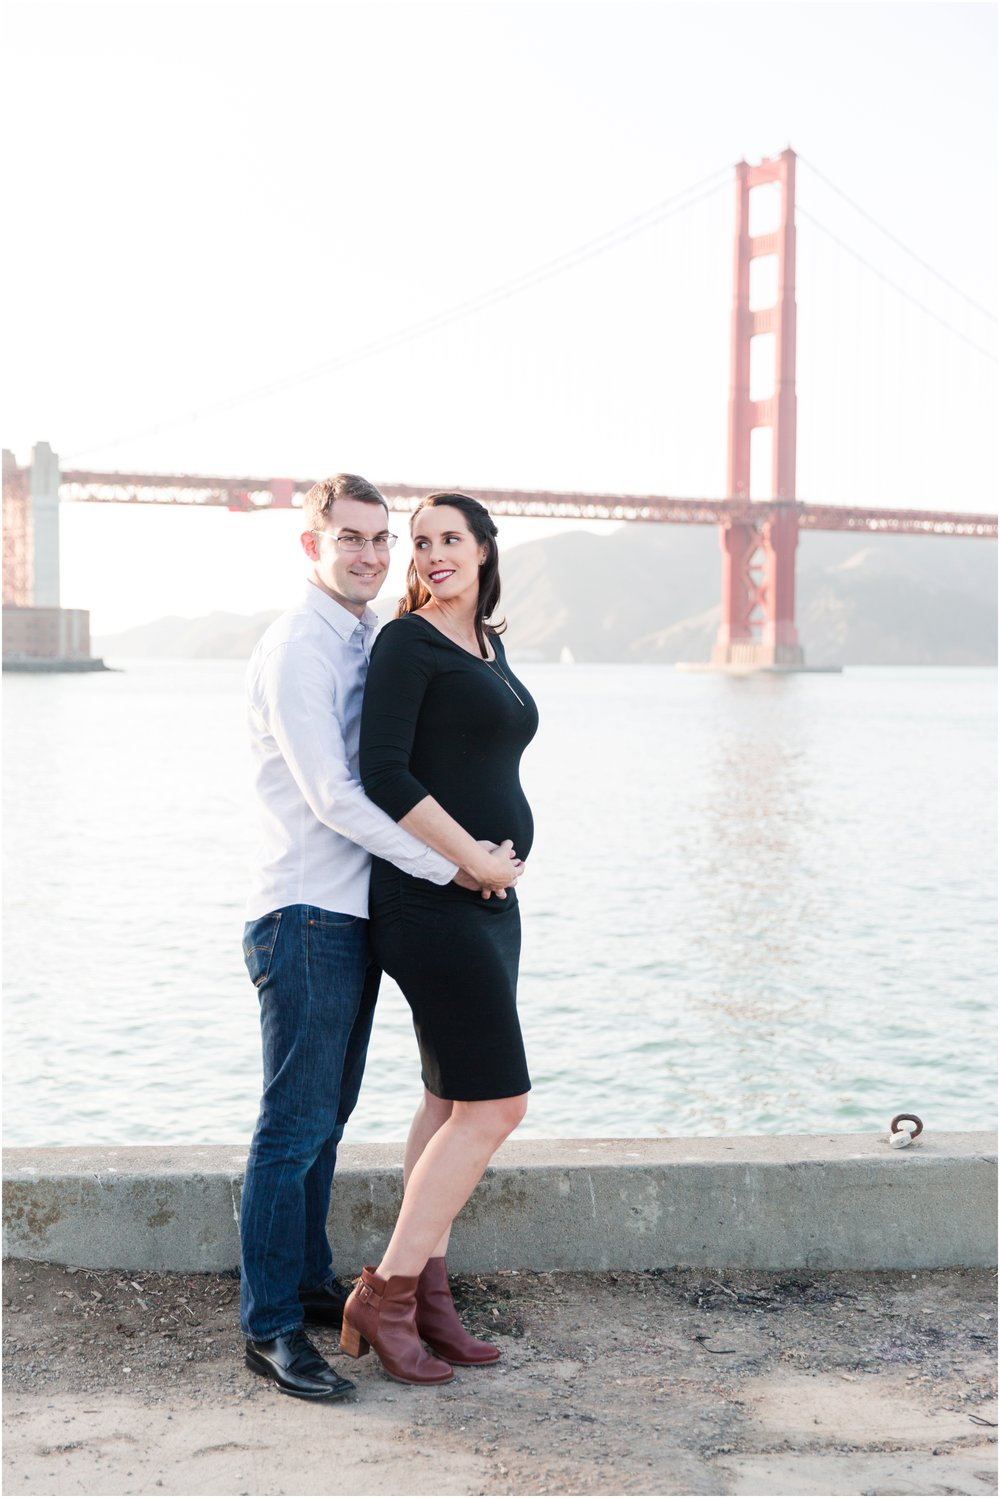 Crissy Field San Francisco maternity pictures by Briana Calderon Photography_0265.jpg